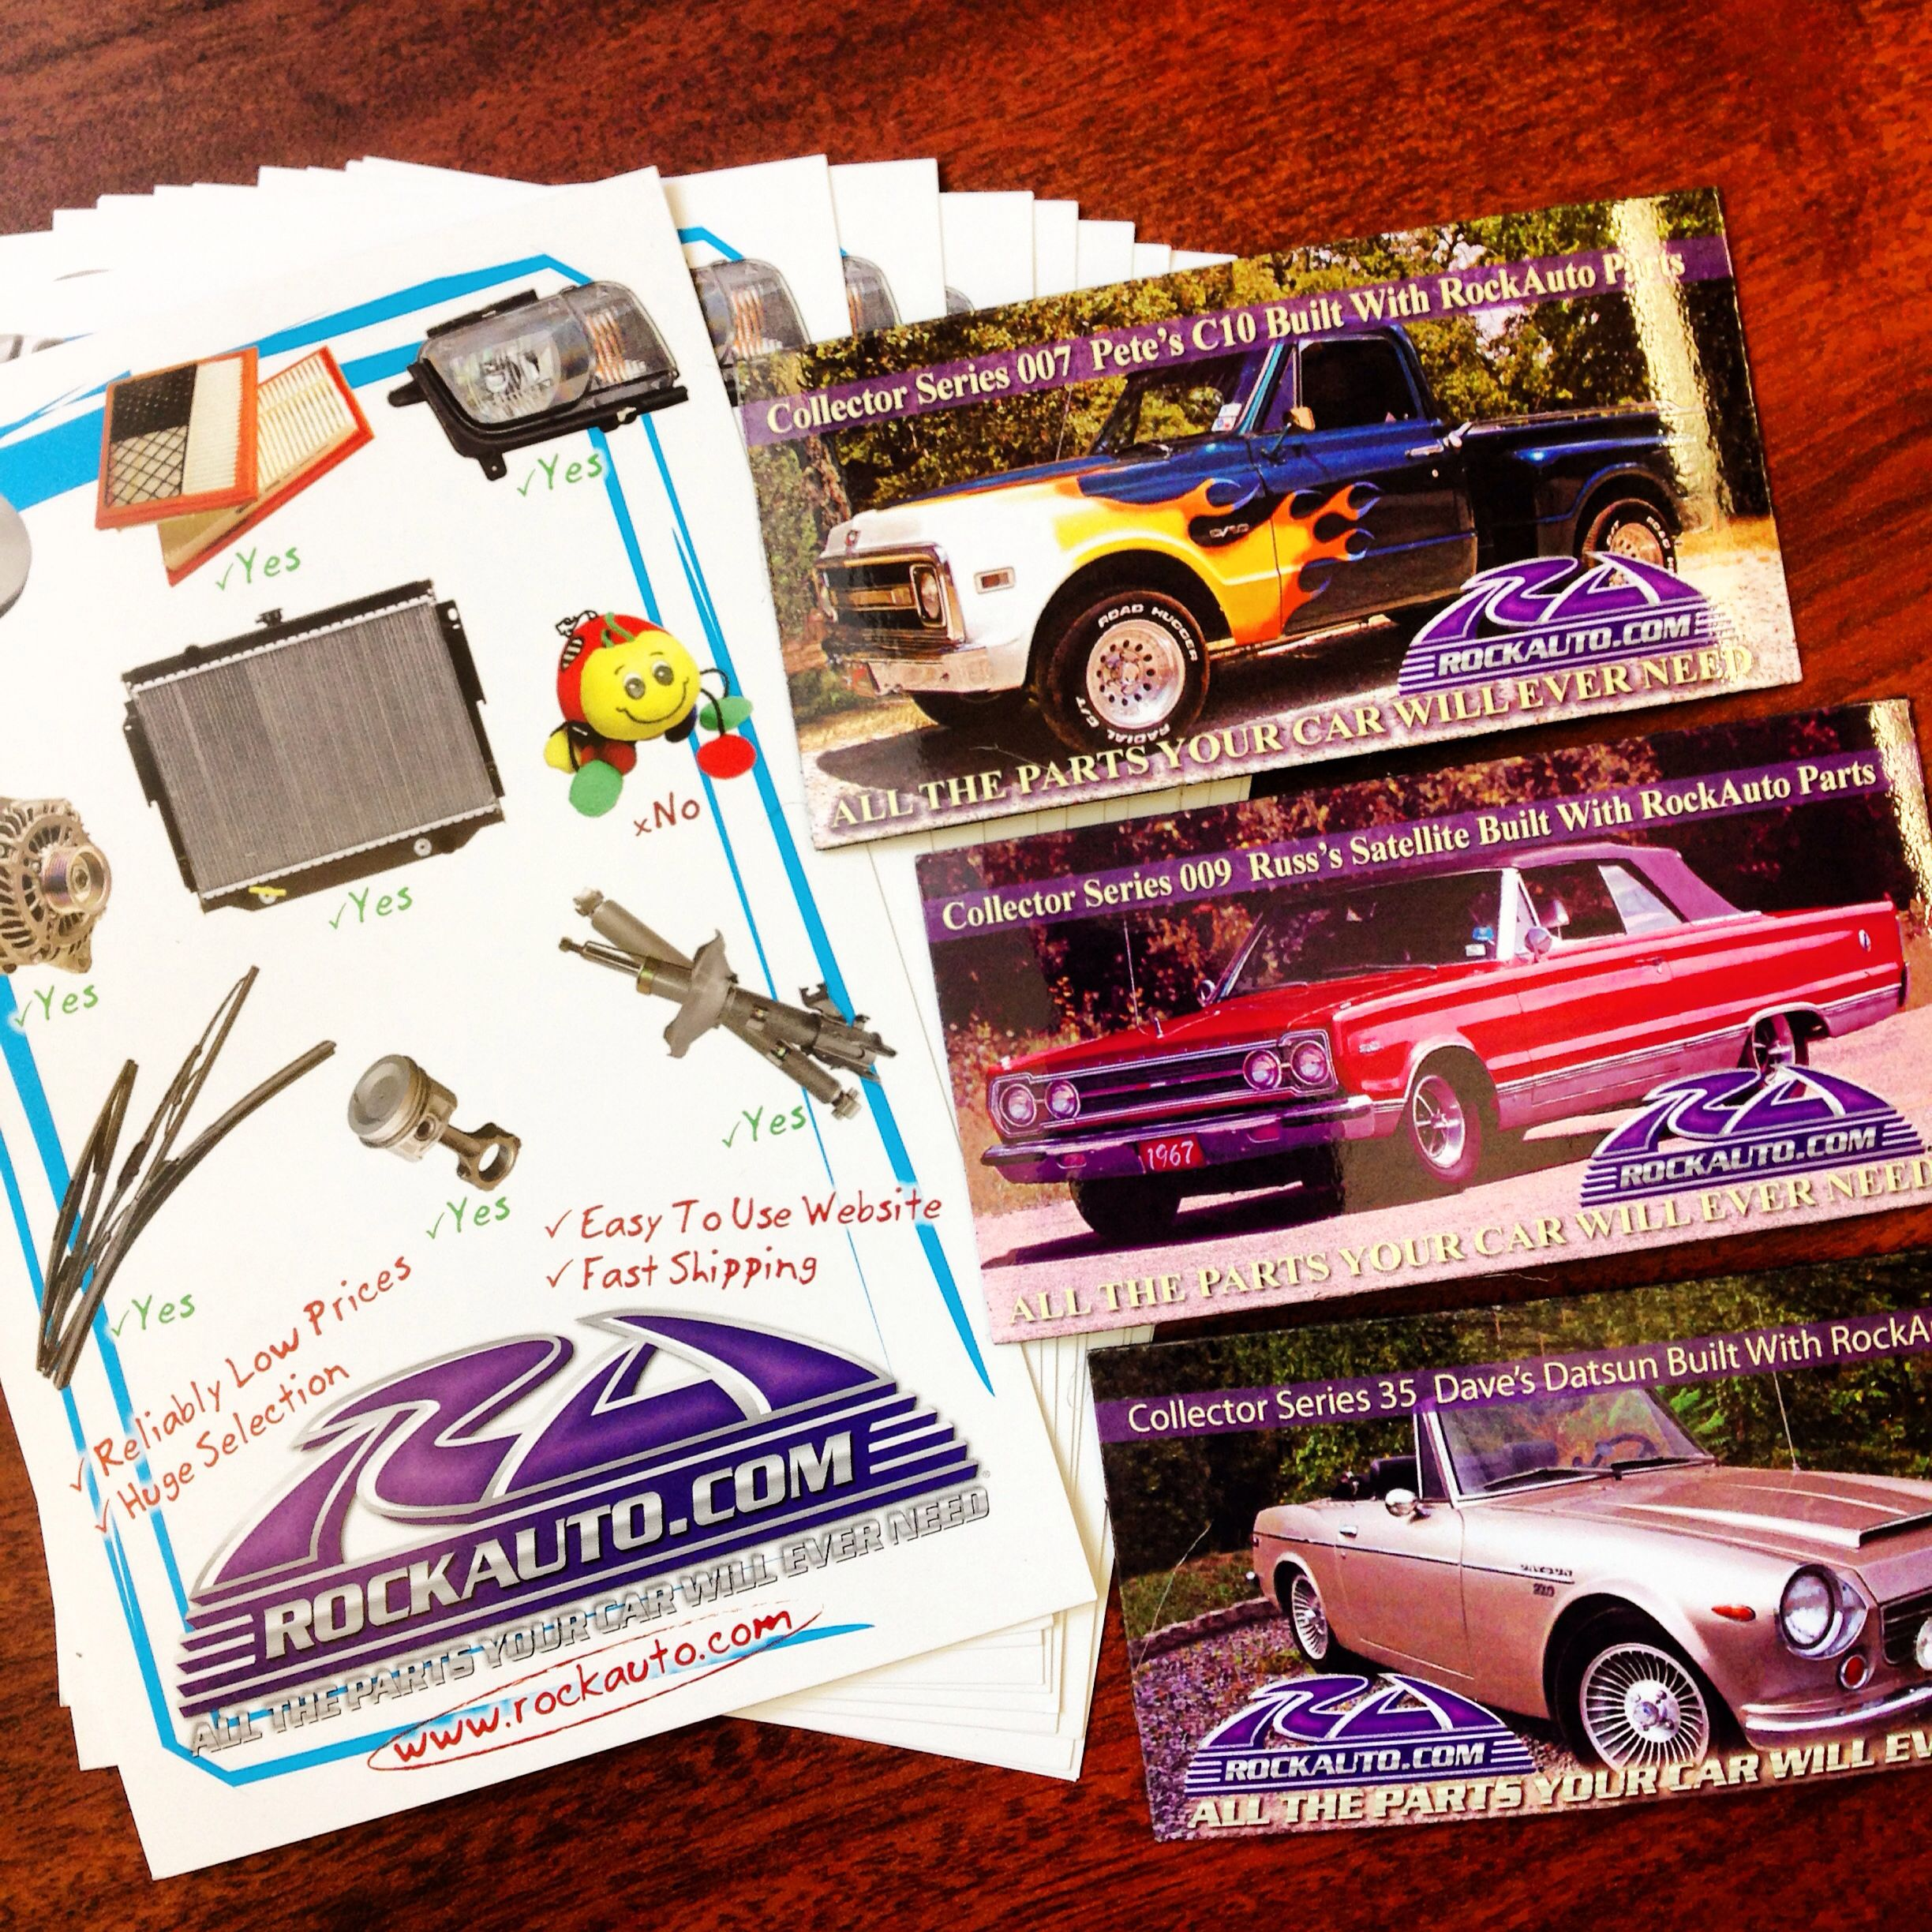 A Very Special THANK YOU To Our Friends From RockAutocom For - Car show goody bag stuffers